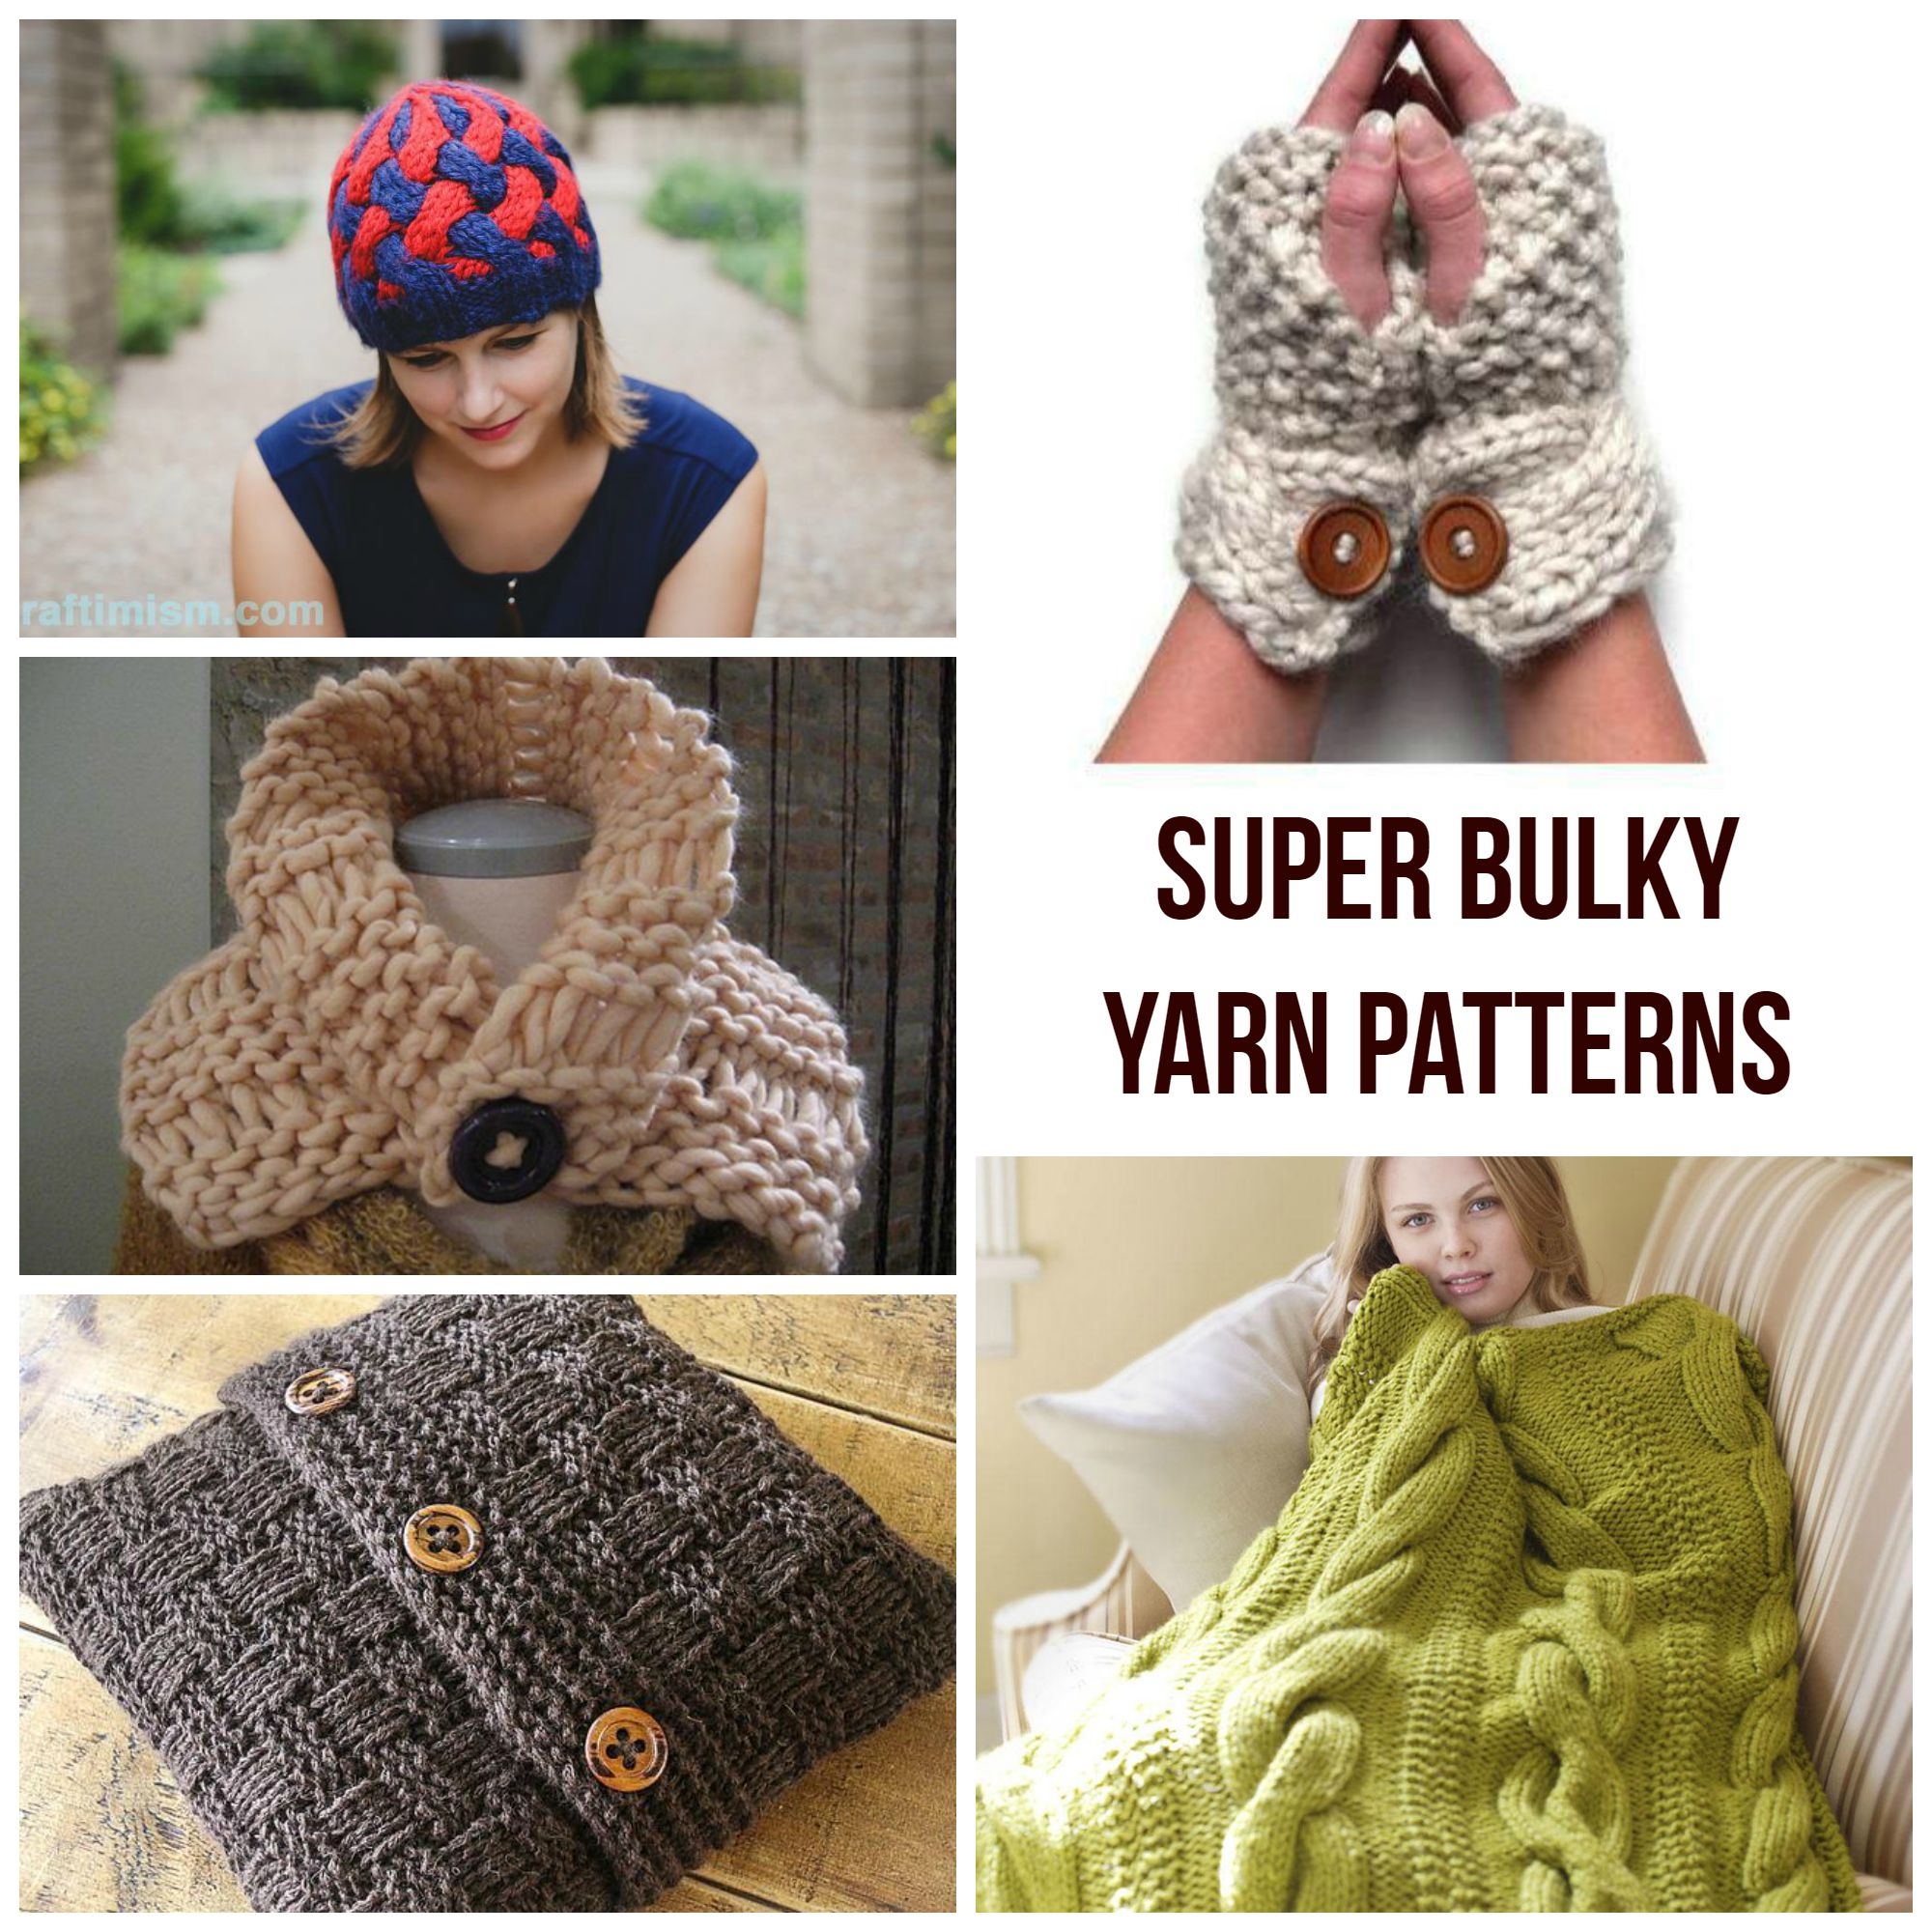 Hand Knitted Throw Patterns 10 Quick Cozy Chunky Knit Blanket Patterns On Craftsy